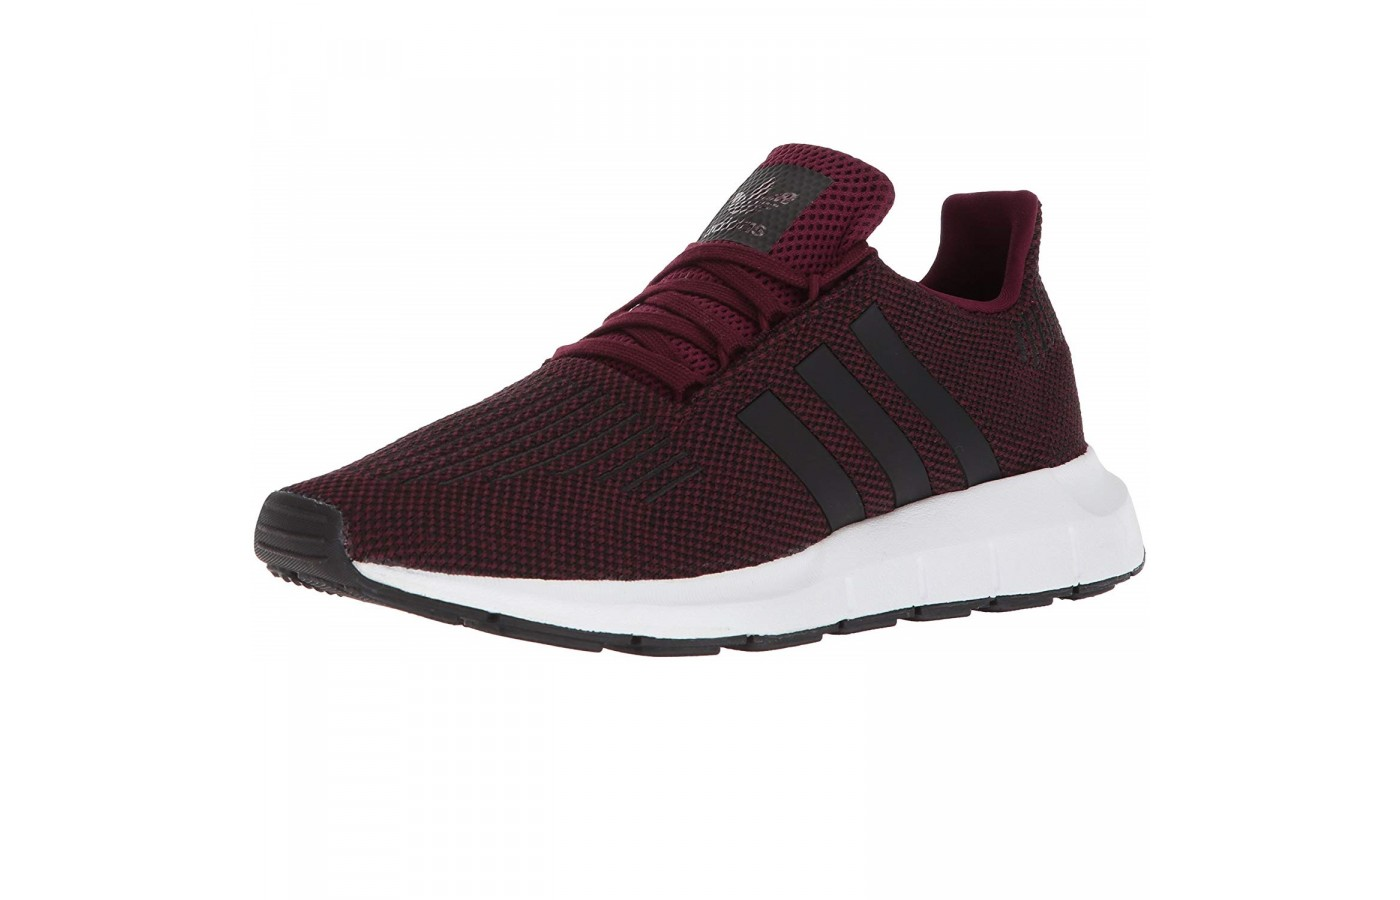 Adidas Swift Run Side